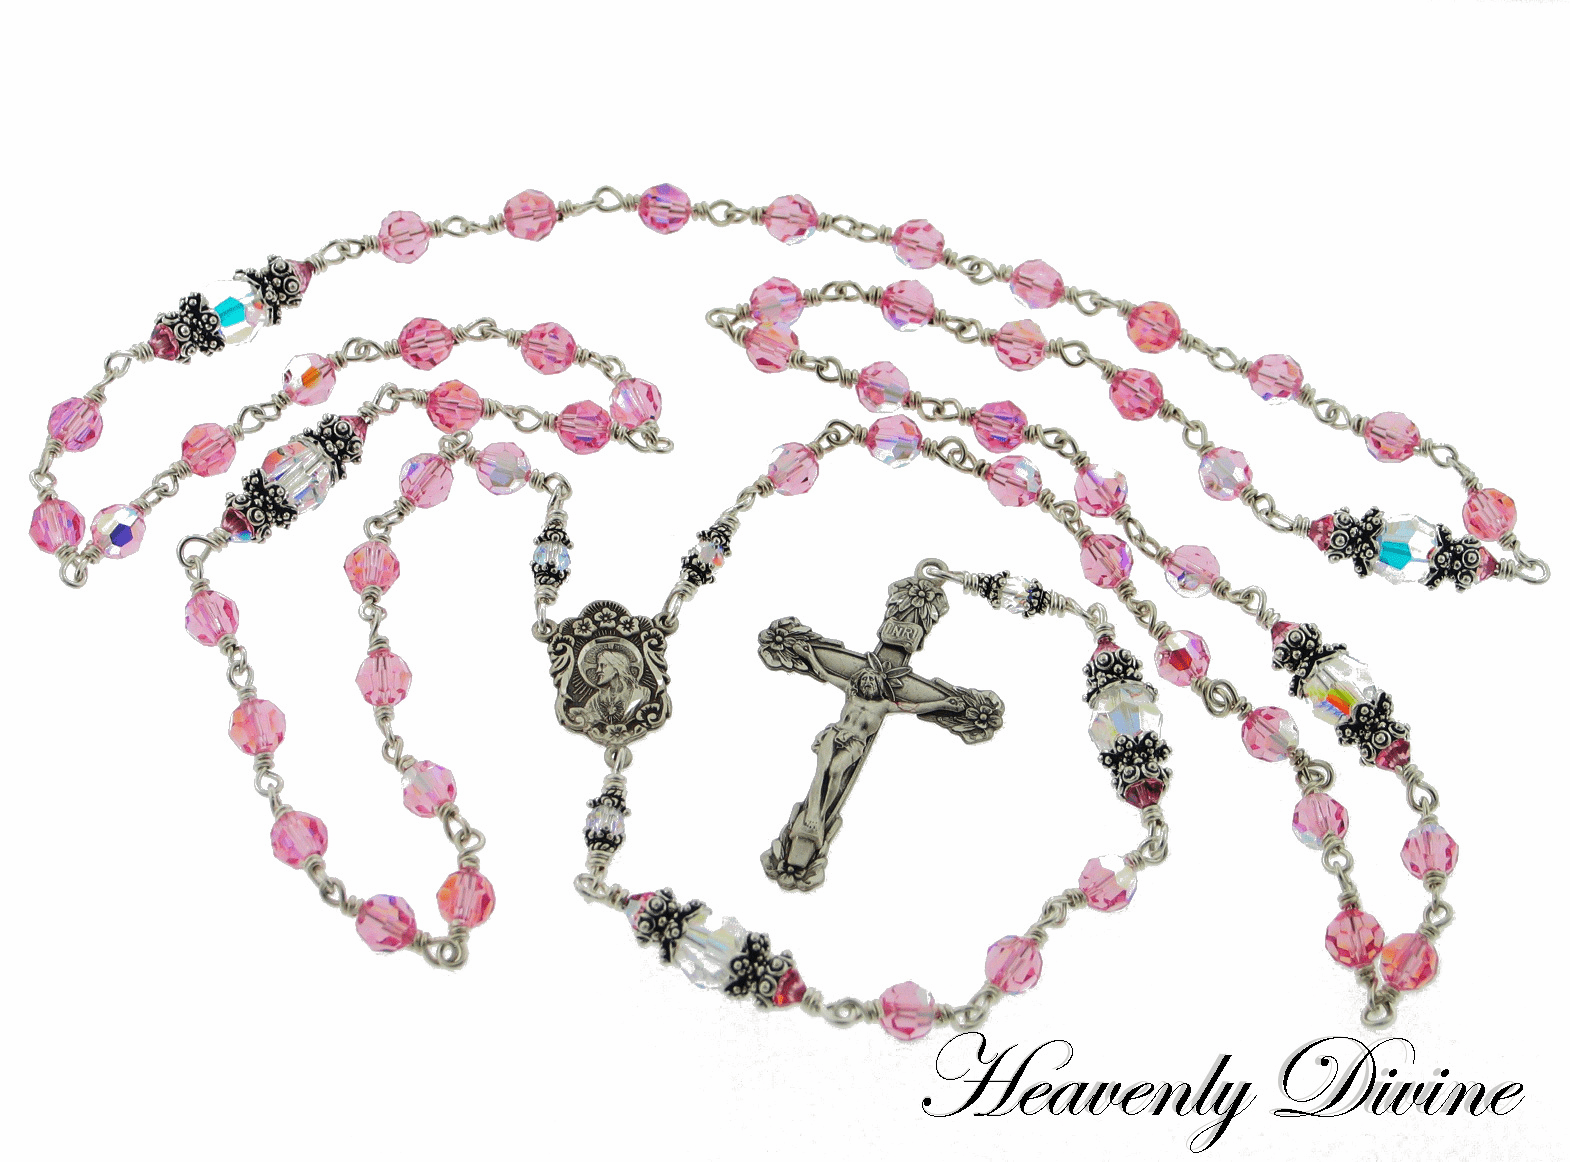 Sacred Heart of Jesus Rose Swarovski Crystal Sterling Silver Rosary by Heavenly Divine